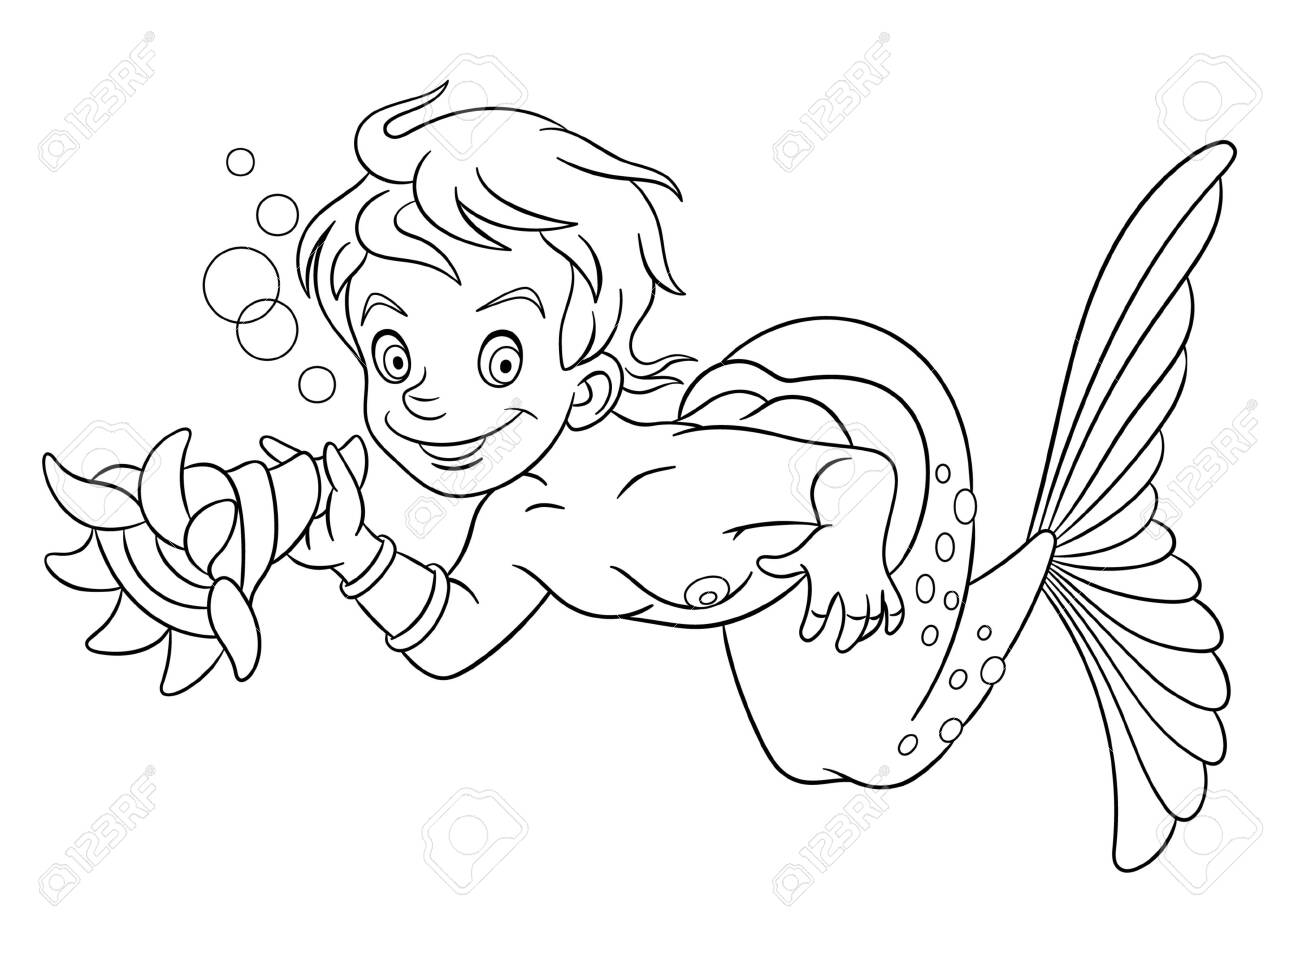 Mermaid Coloring Pages For Kids Tag: 22 Fantastic Mermaid Coloring ... | 975x1300